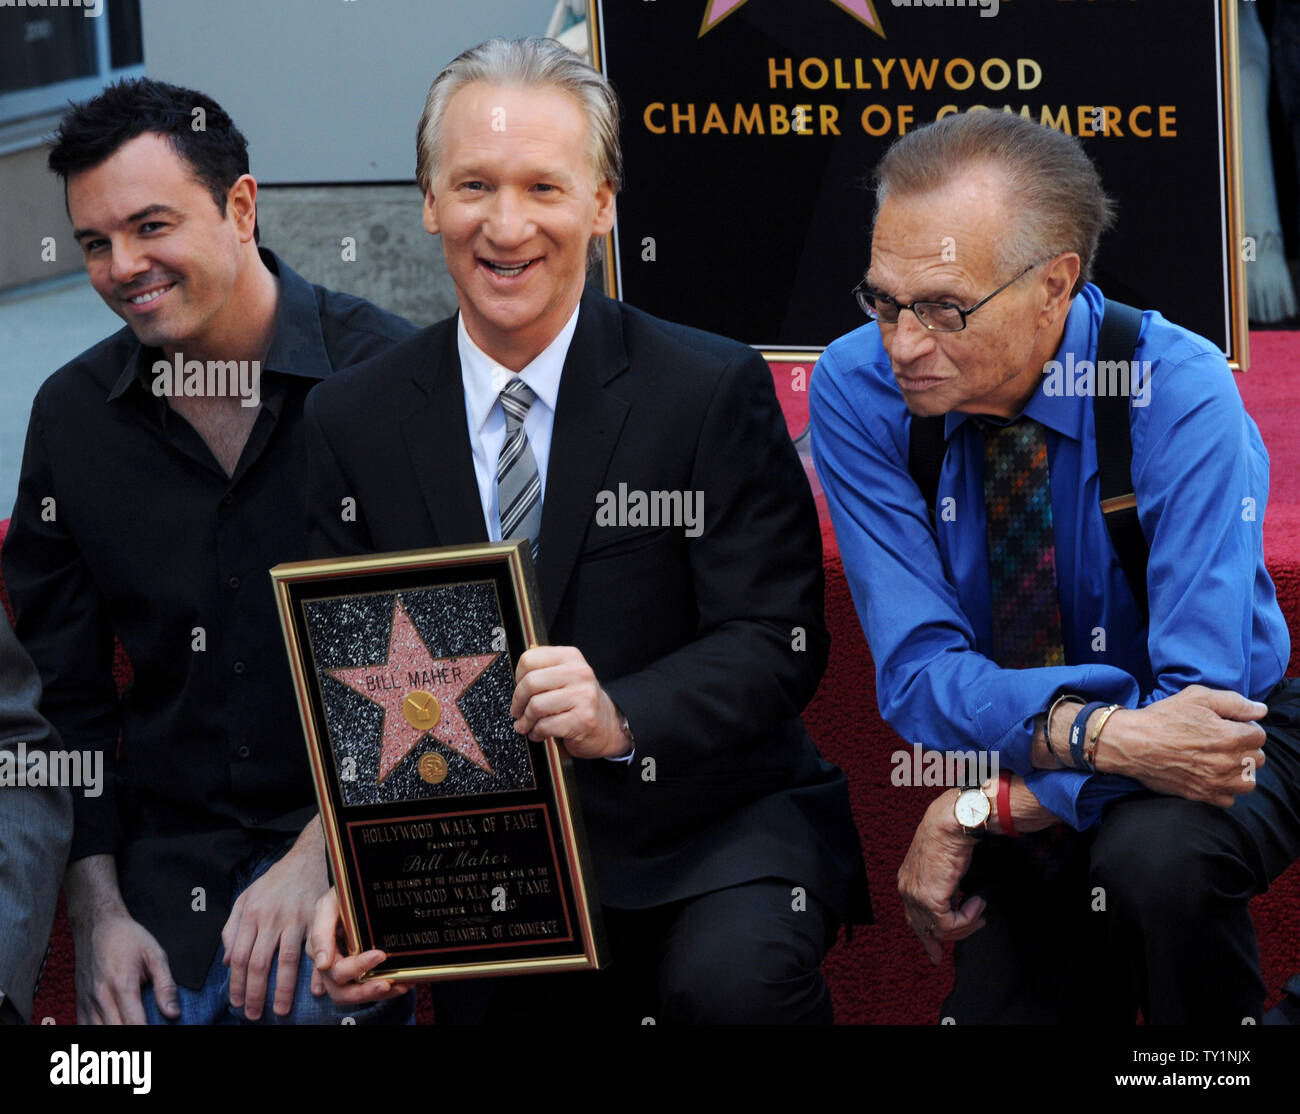 Comedian and television host Bill Maher (C) is joined by animator Seth MacFarlane (L) and broadcaster Larry King during an unveiling ceremony honoring him with the 2,417th star on the Hollywood Walk of Fame in Los Angeles on September 14, 2010.     UPI/Jim Ruymen Stock Photo